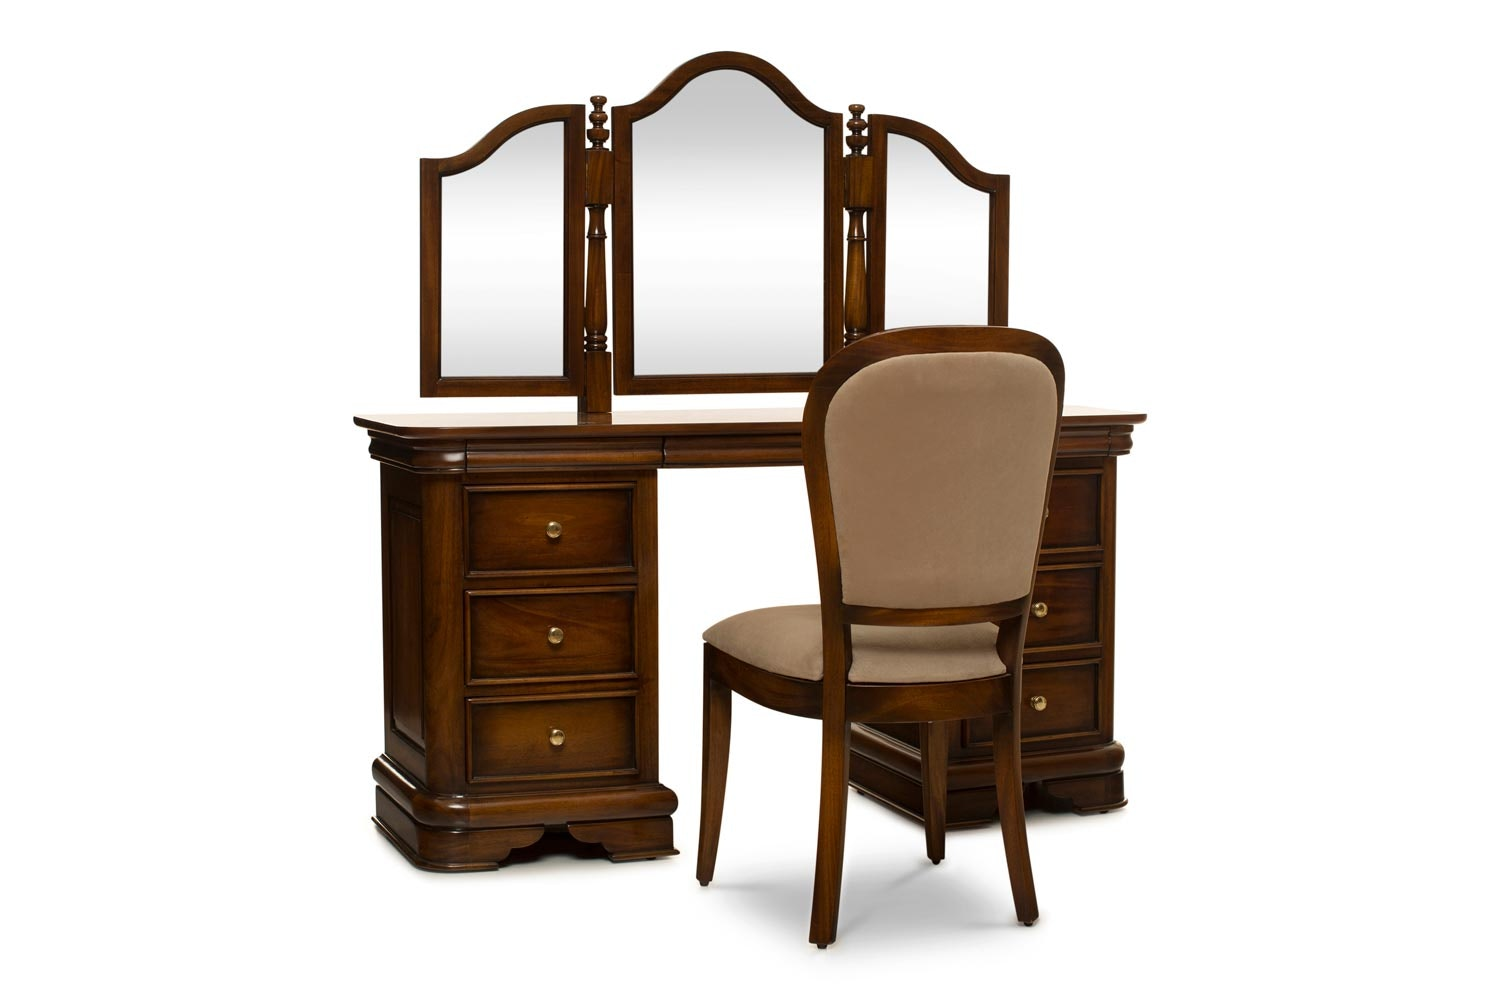 Barouge Dressing Table 9 Drawer|Bedroom Chair